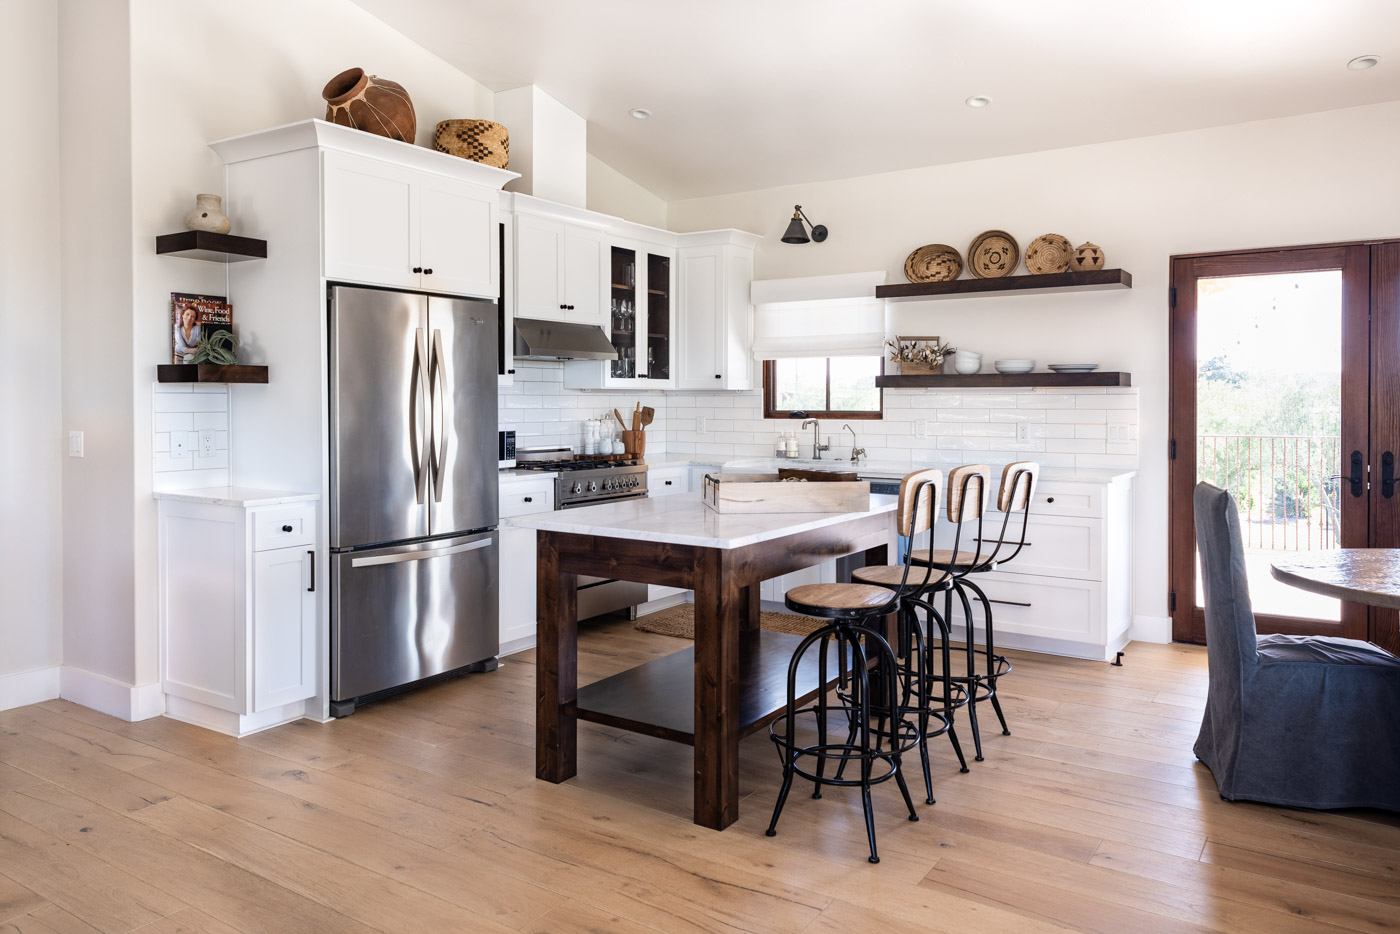 An L-shaped kitchen layout with custom white painted cabinets and free-standing wood island